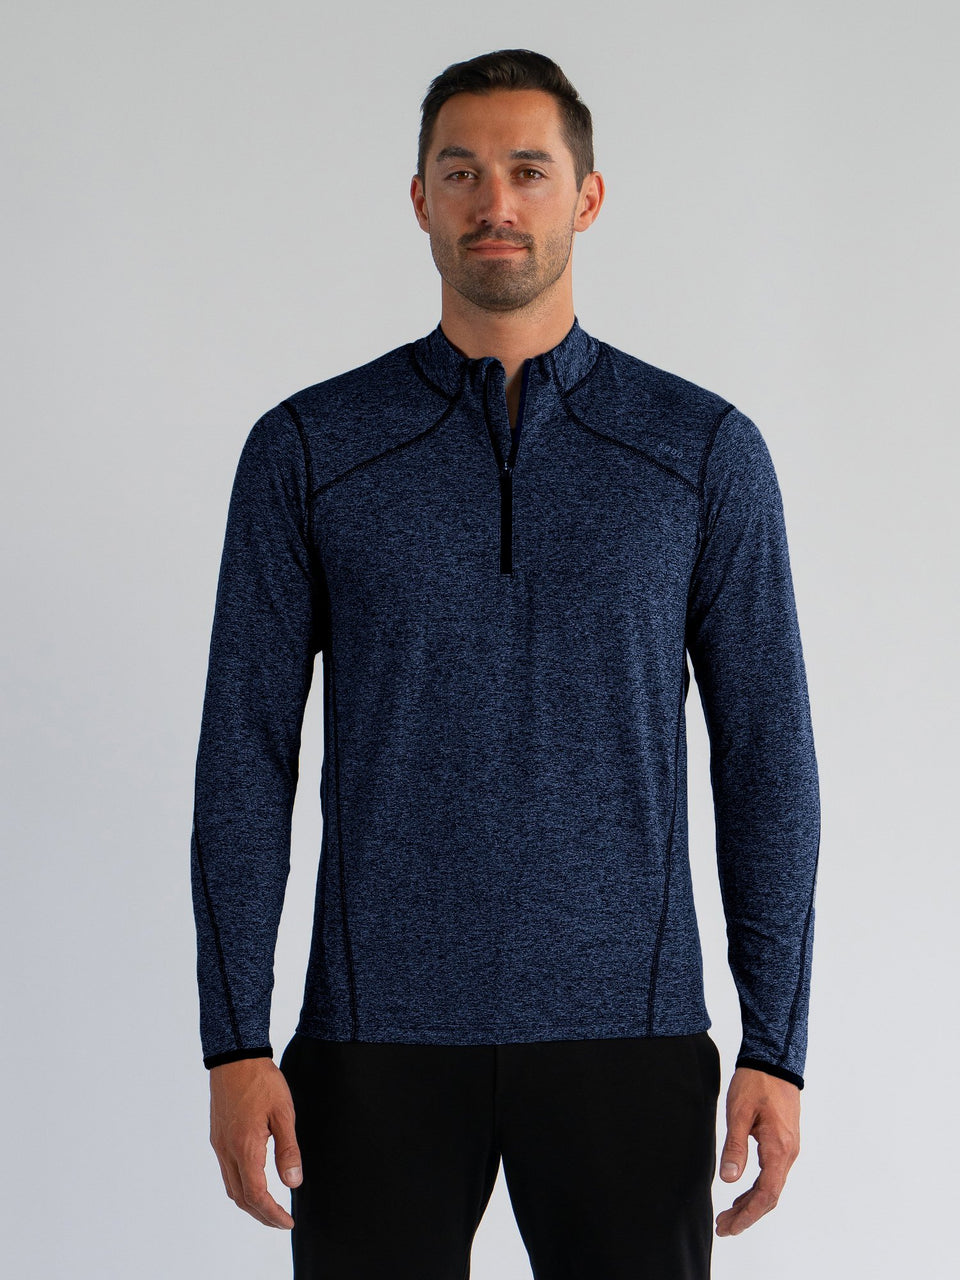 Elevate 1/4 Zip - Navy Black - Small - SODO Apparel - Limited Inventory